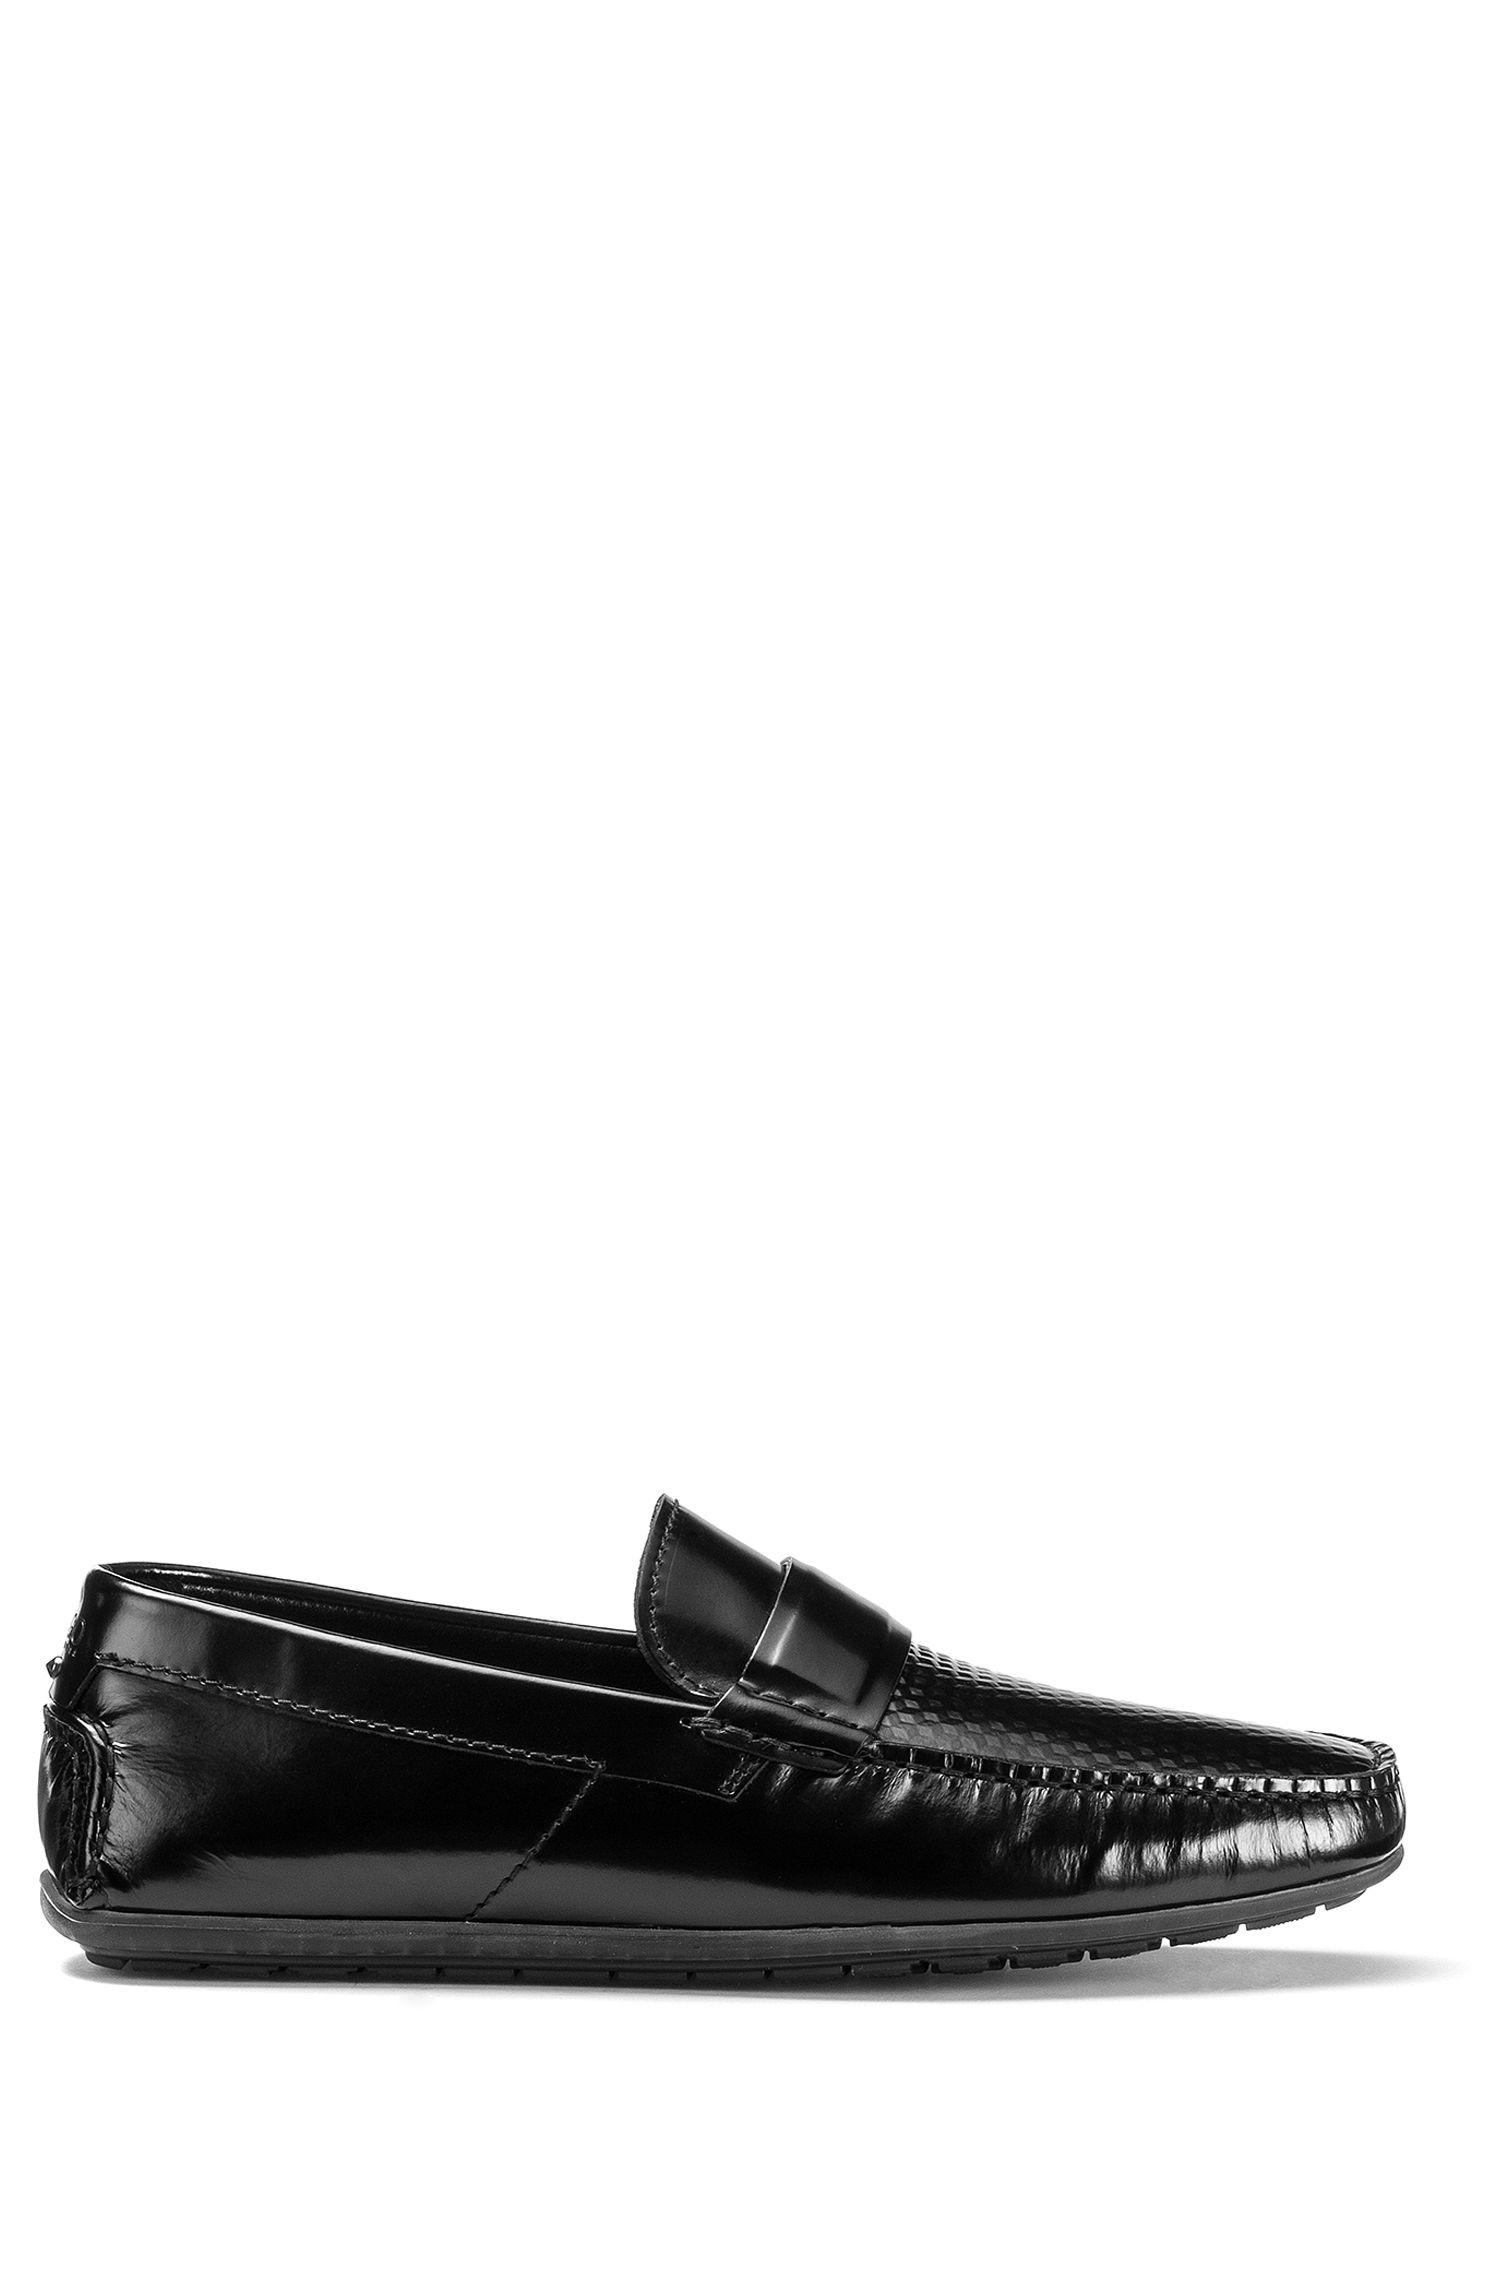 Slip-on moccasins in embossed leather